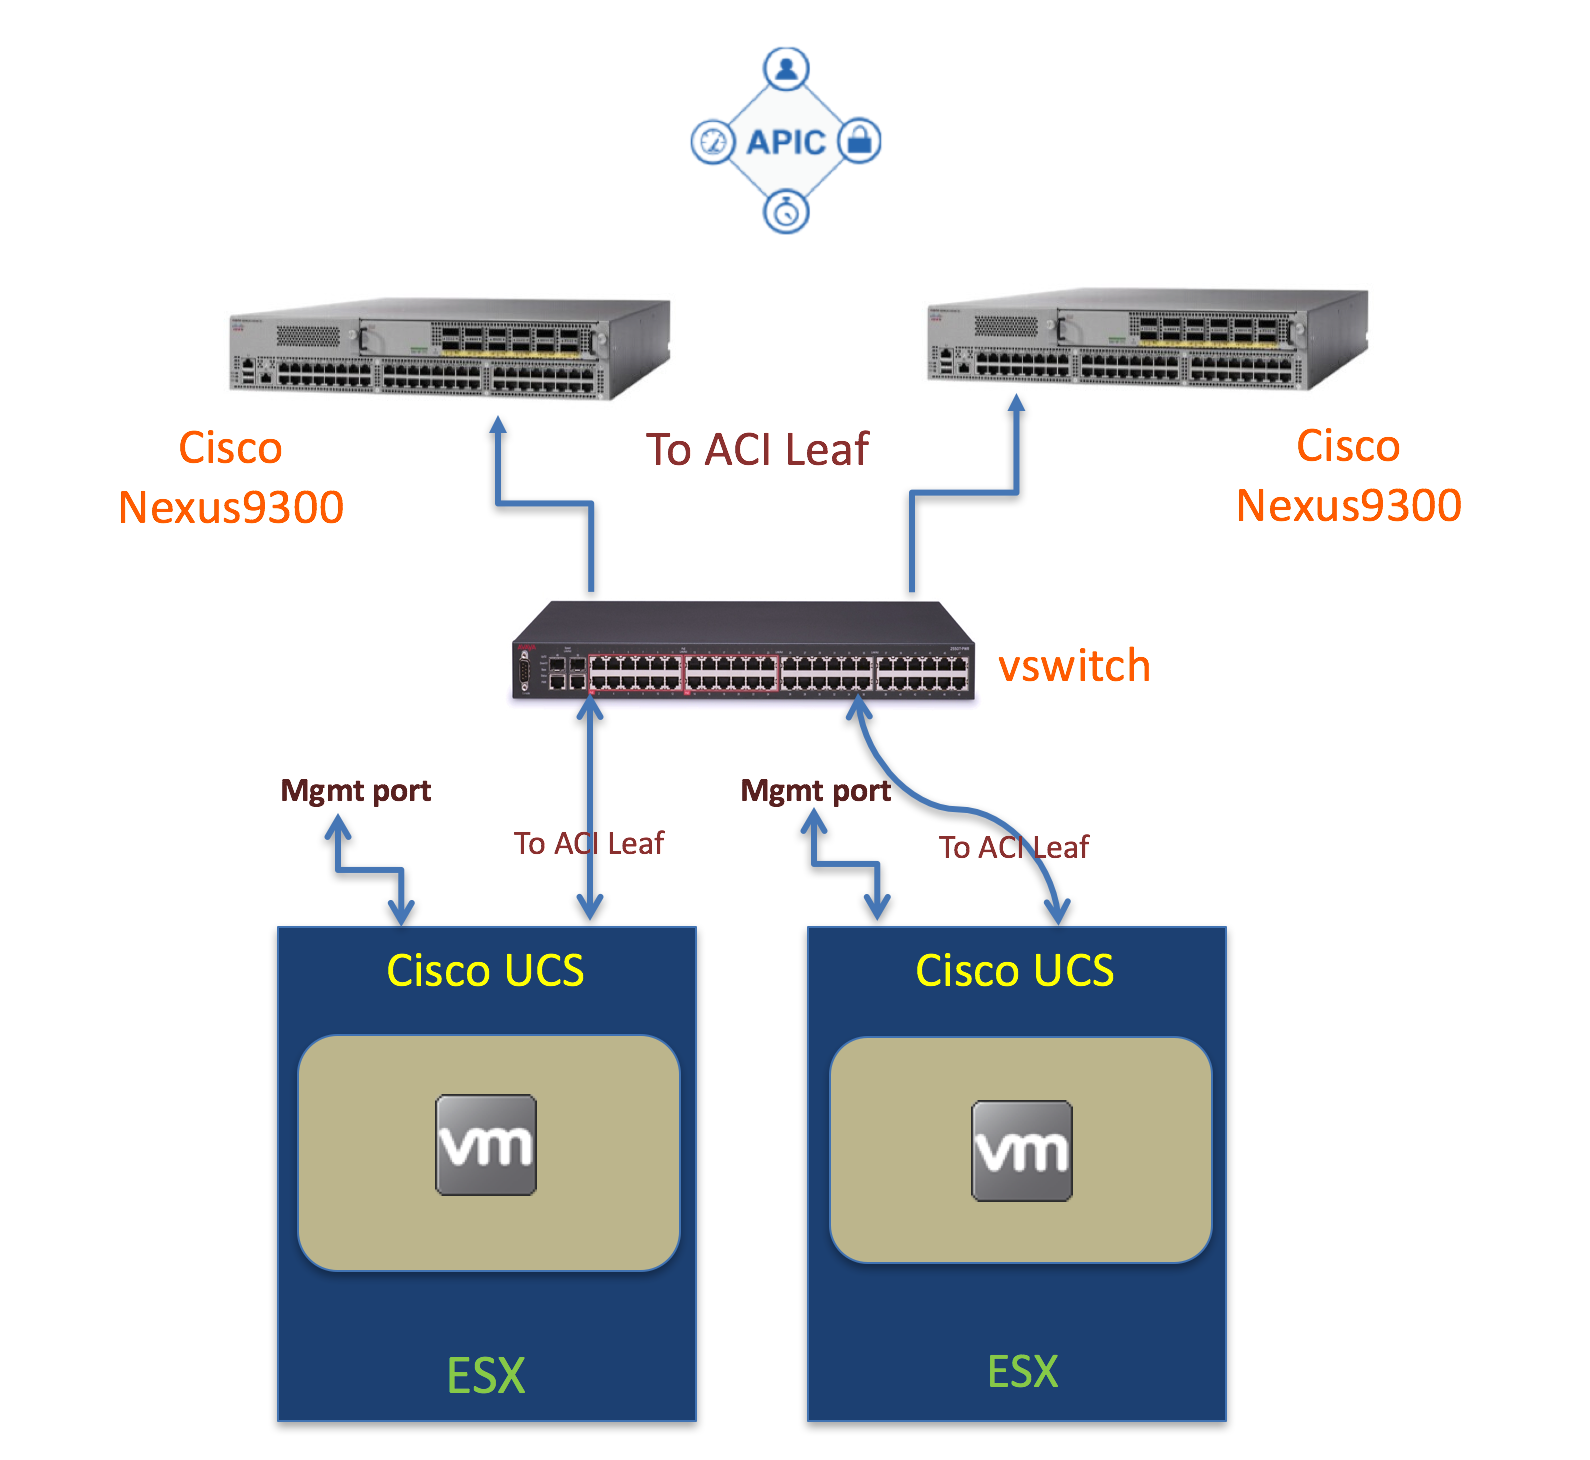 Each VM has two interfaces one for the management network and the other interface connects to the ACI leaf Below is the a logical diagram on the VMs are